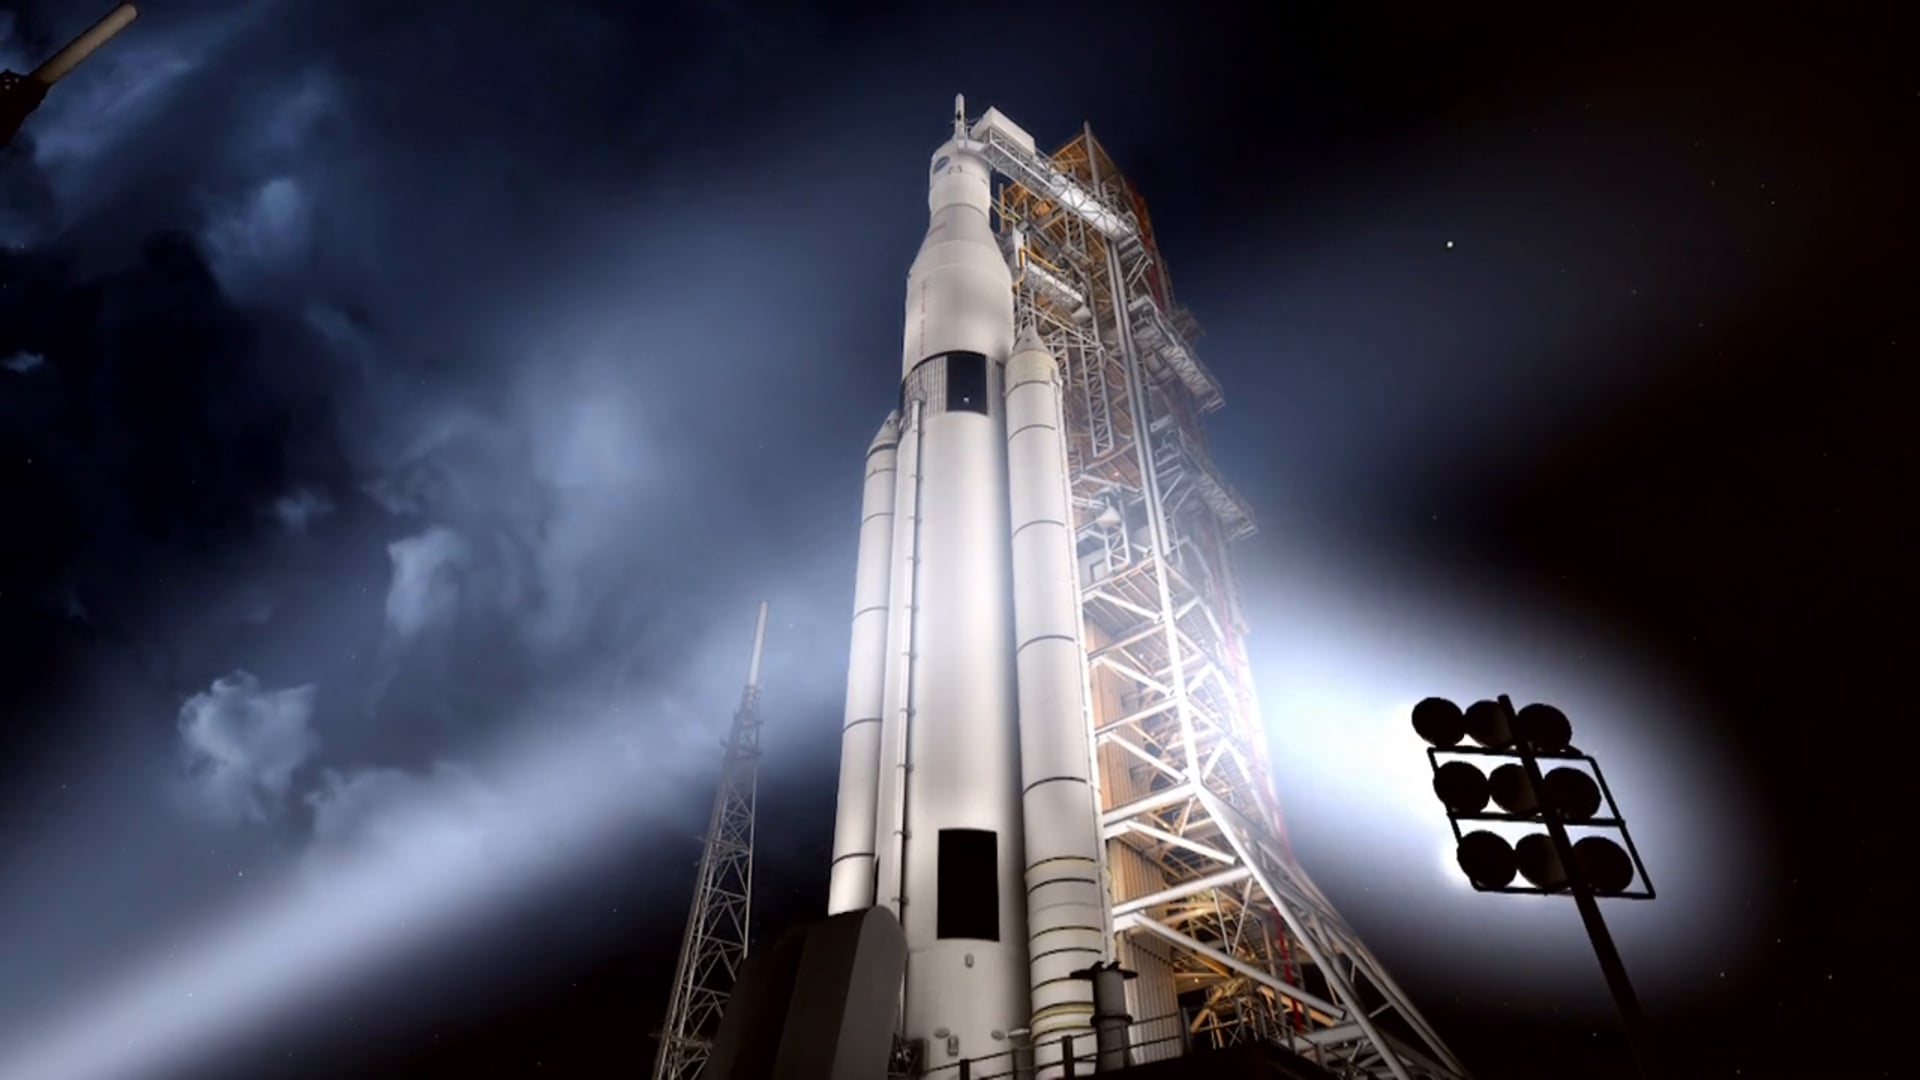 NASA's Space Launch System - Launch Animation (September 2014)